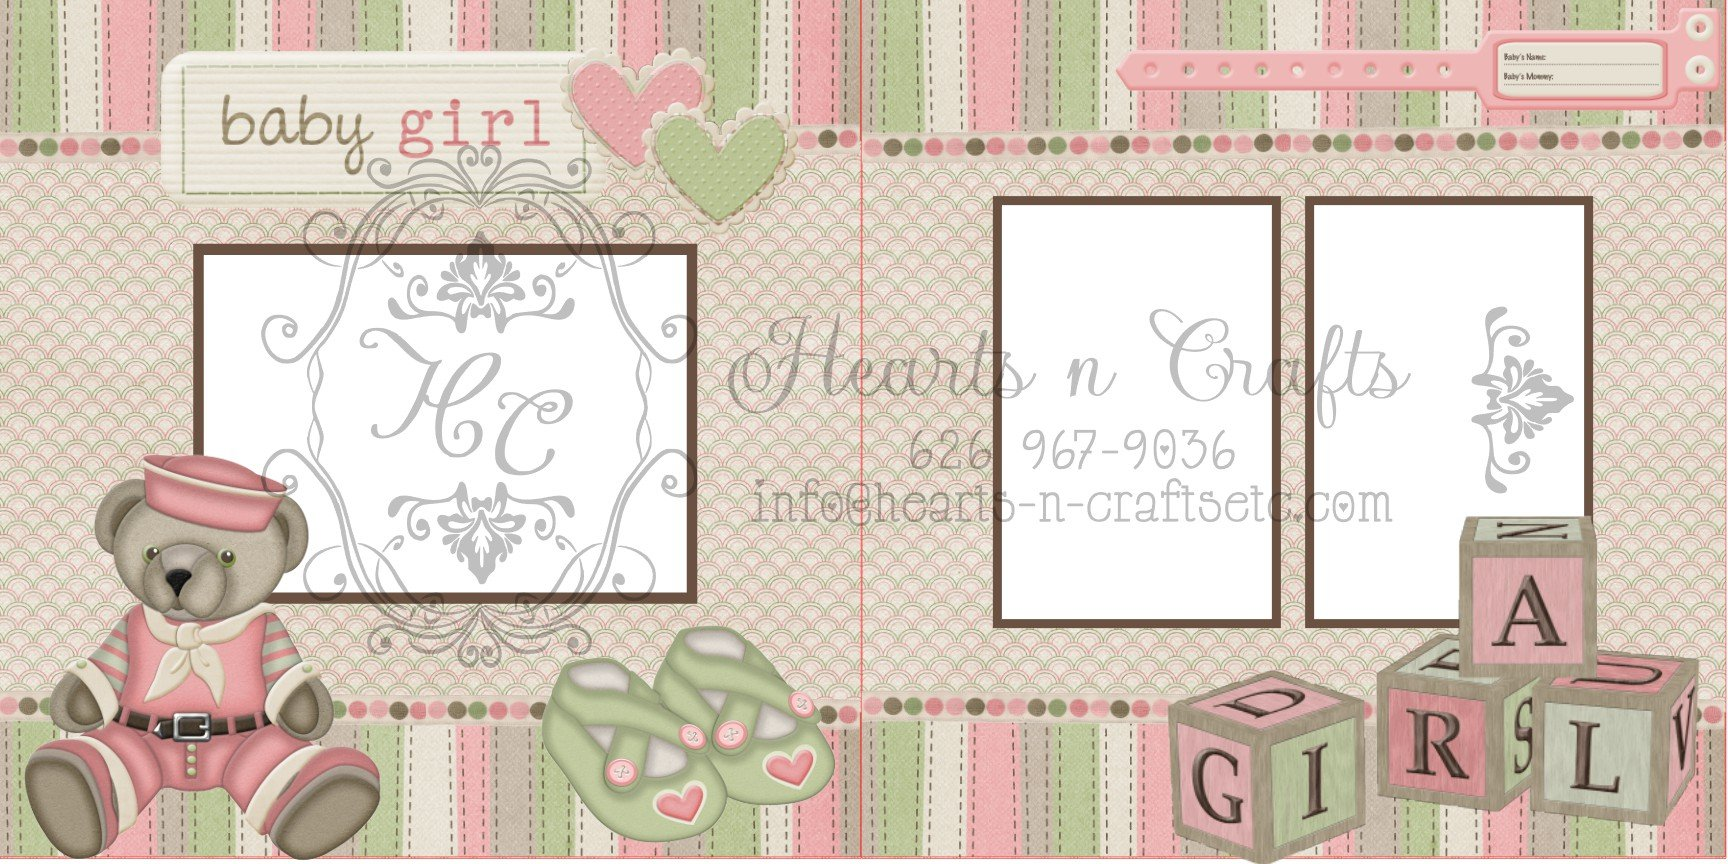 Baby Girl 2 Page Layout